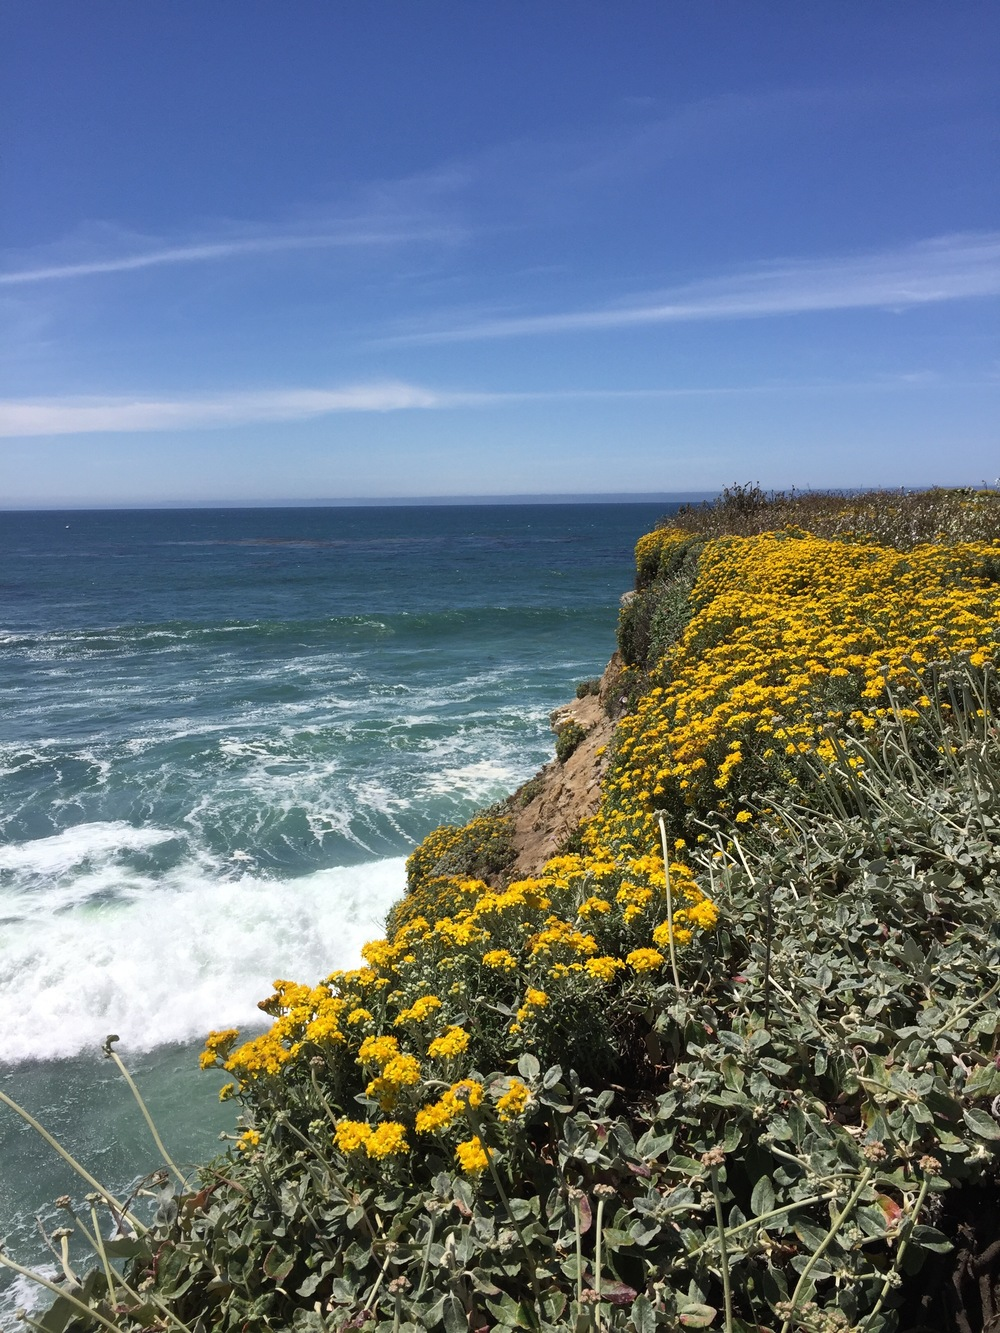 Once back in Santa Cruz, one of the first places I walked was along the coast at Wilder Ranch State Park.